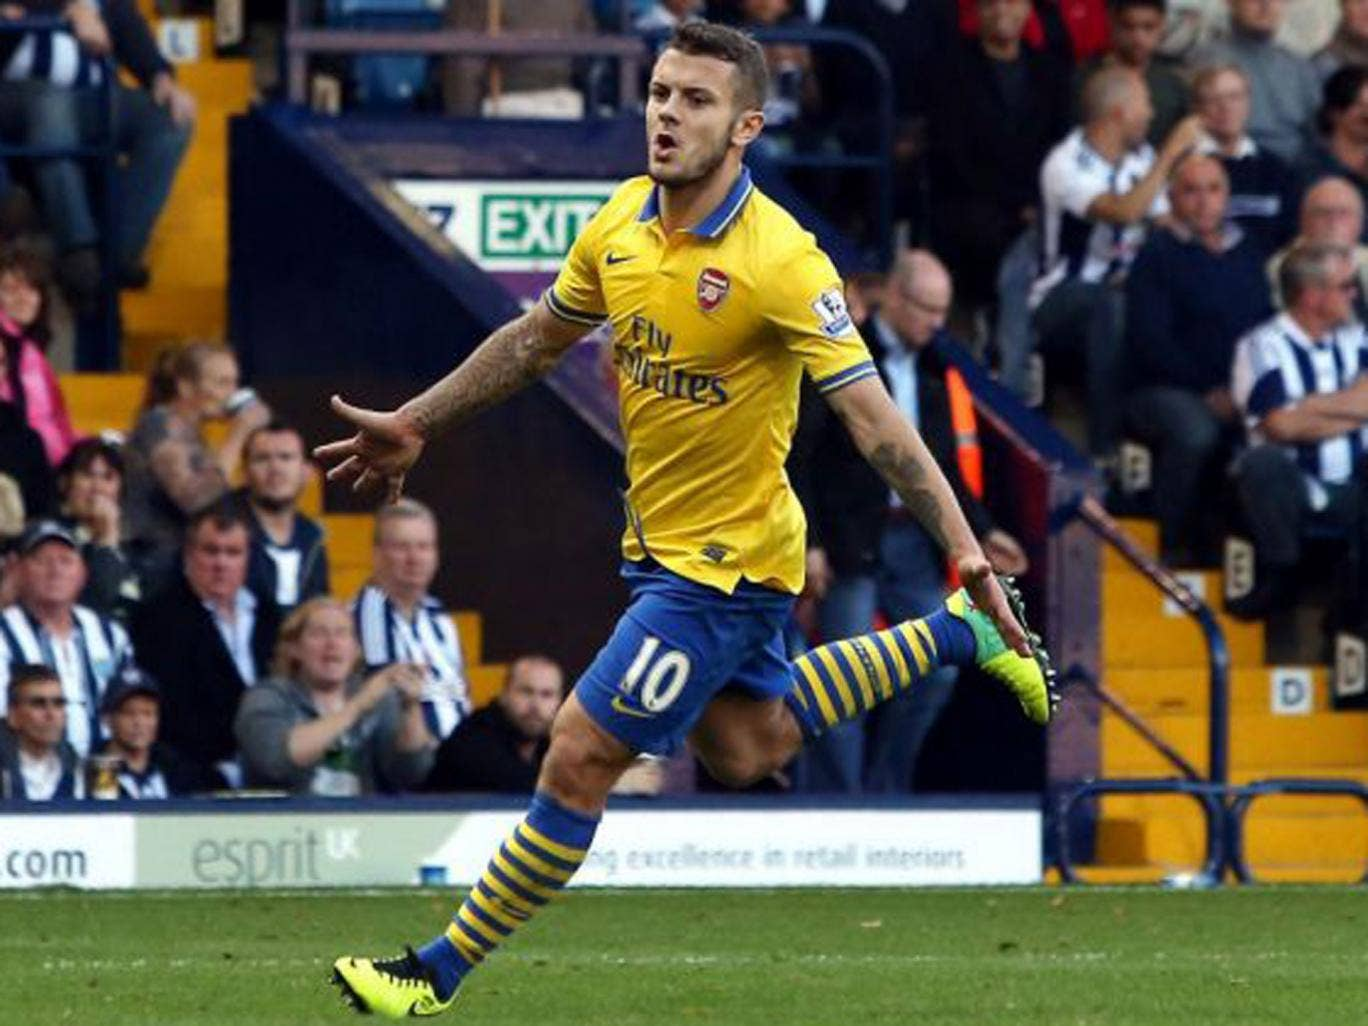 Jack Wilshere celebrates his goal for Arsenal against West Brom on Sunday